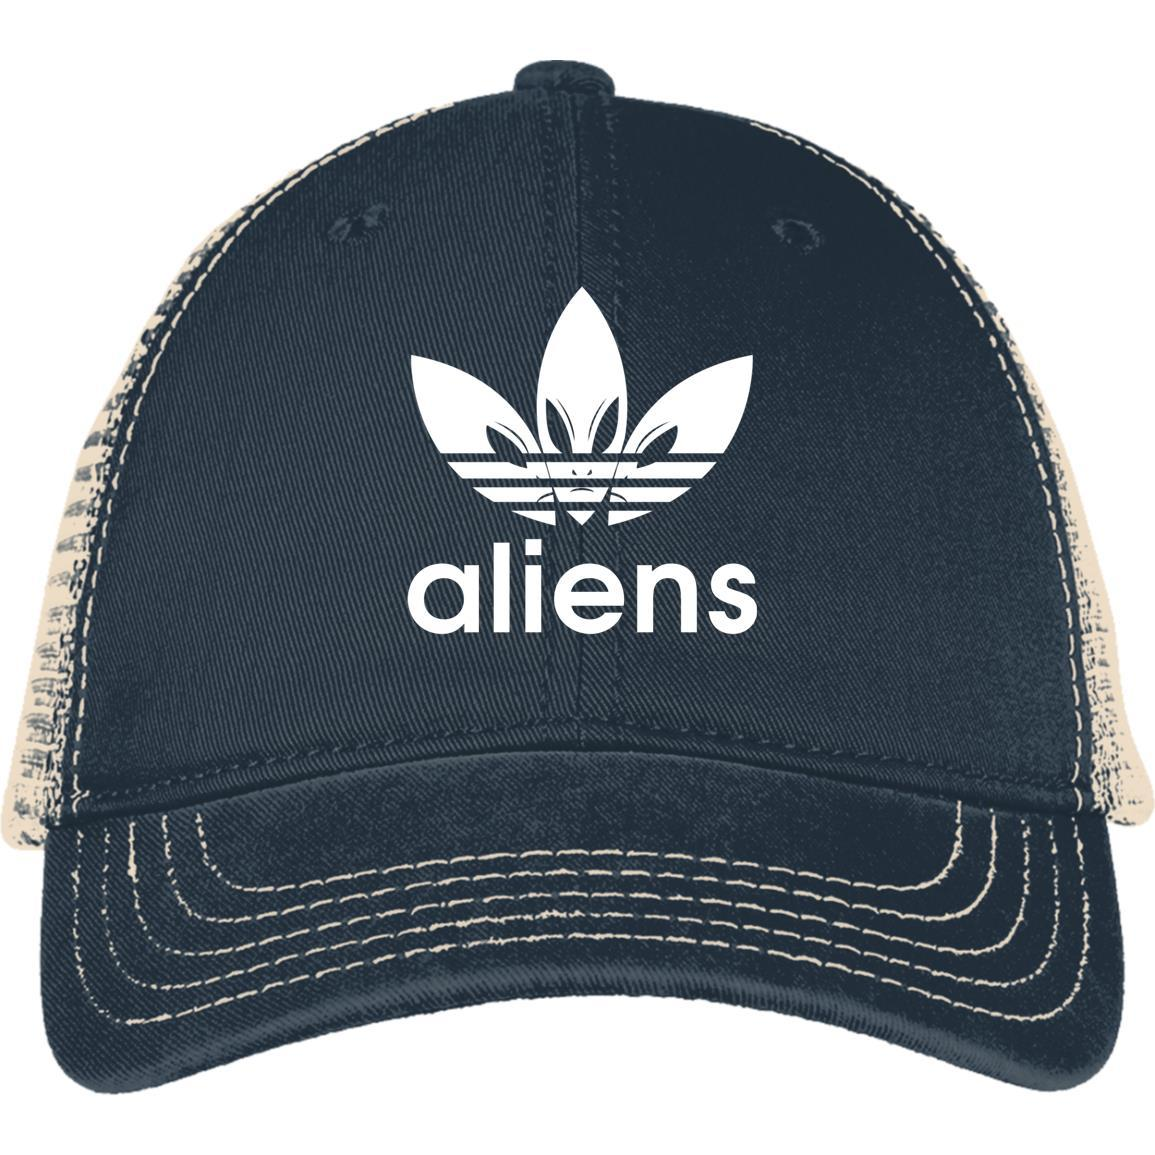 Aliens Mesh Back Cap